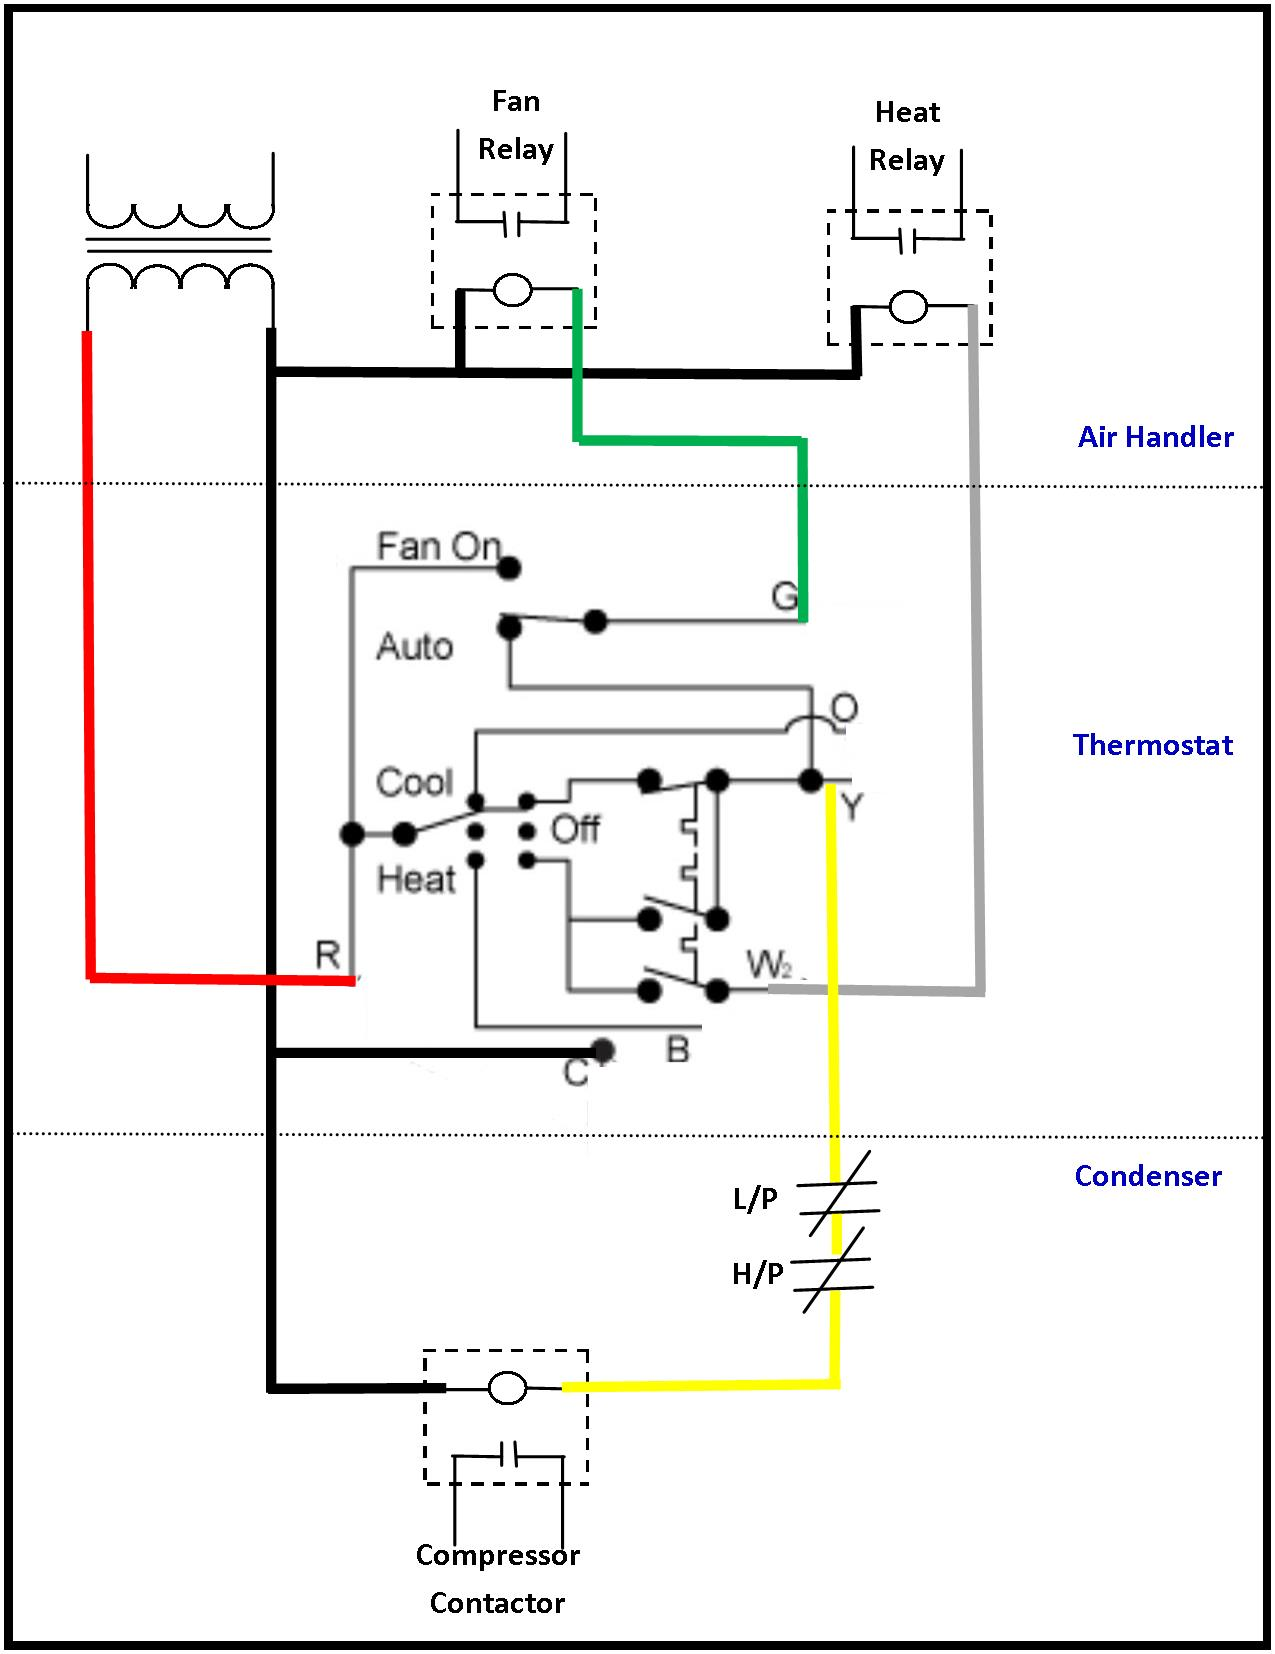 AC low voltage wiring diagram1 wiring an ac central ac wiring diagram \u2022 free wiring diagrams ac thermostat wiring diagram at webbmarketing.co